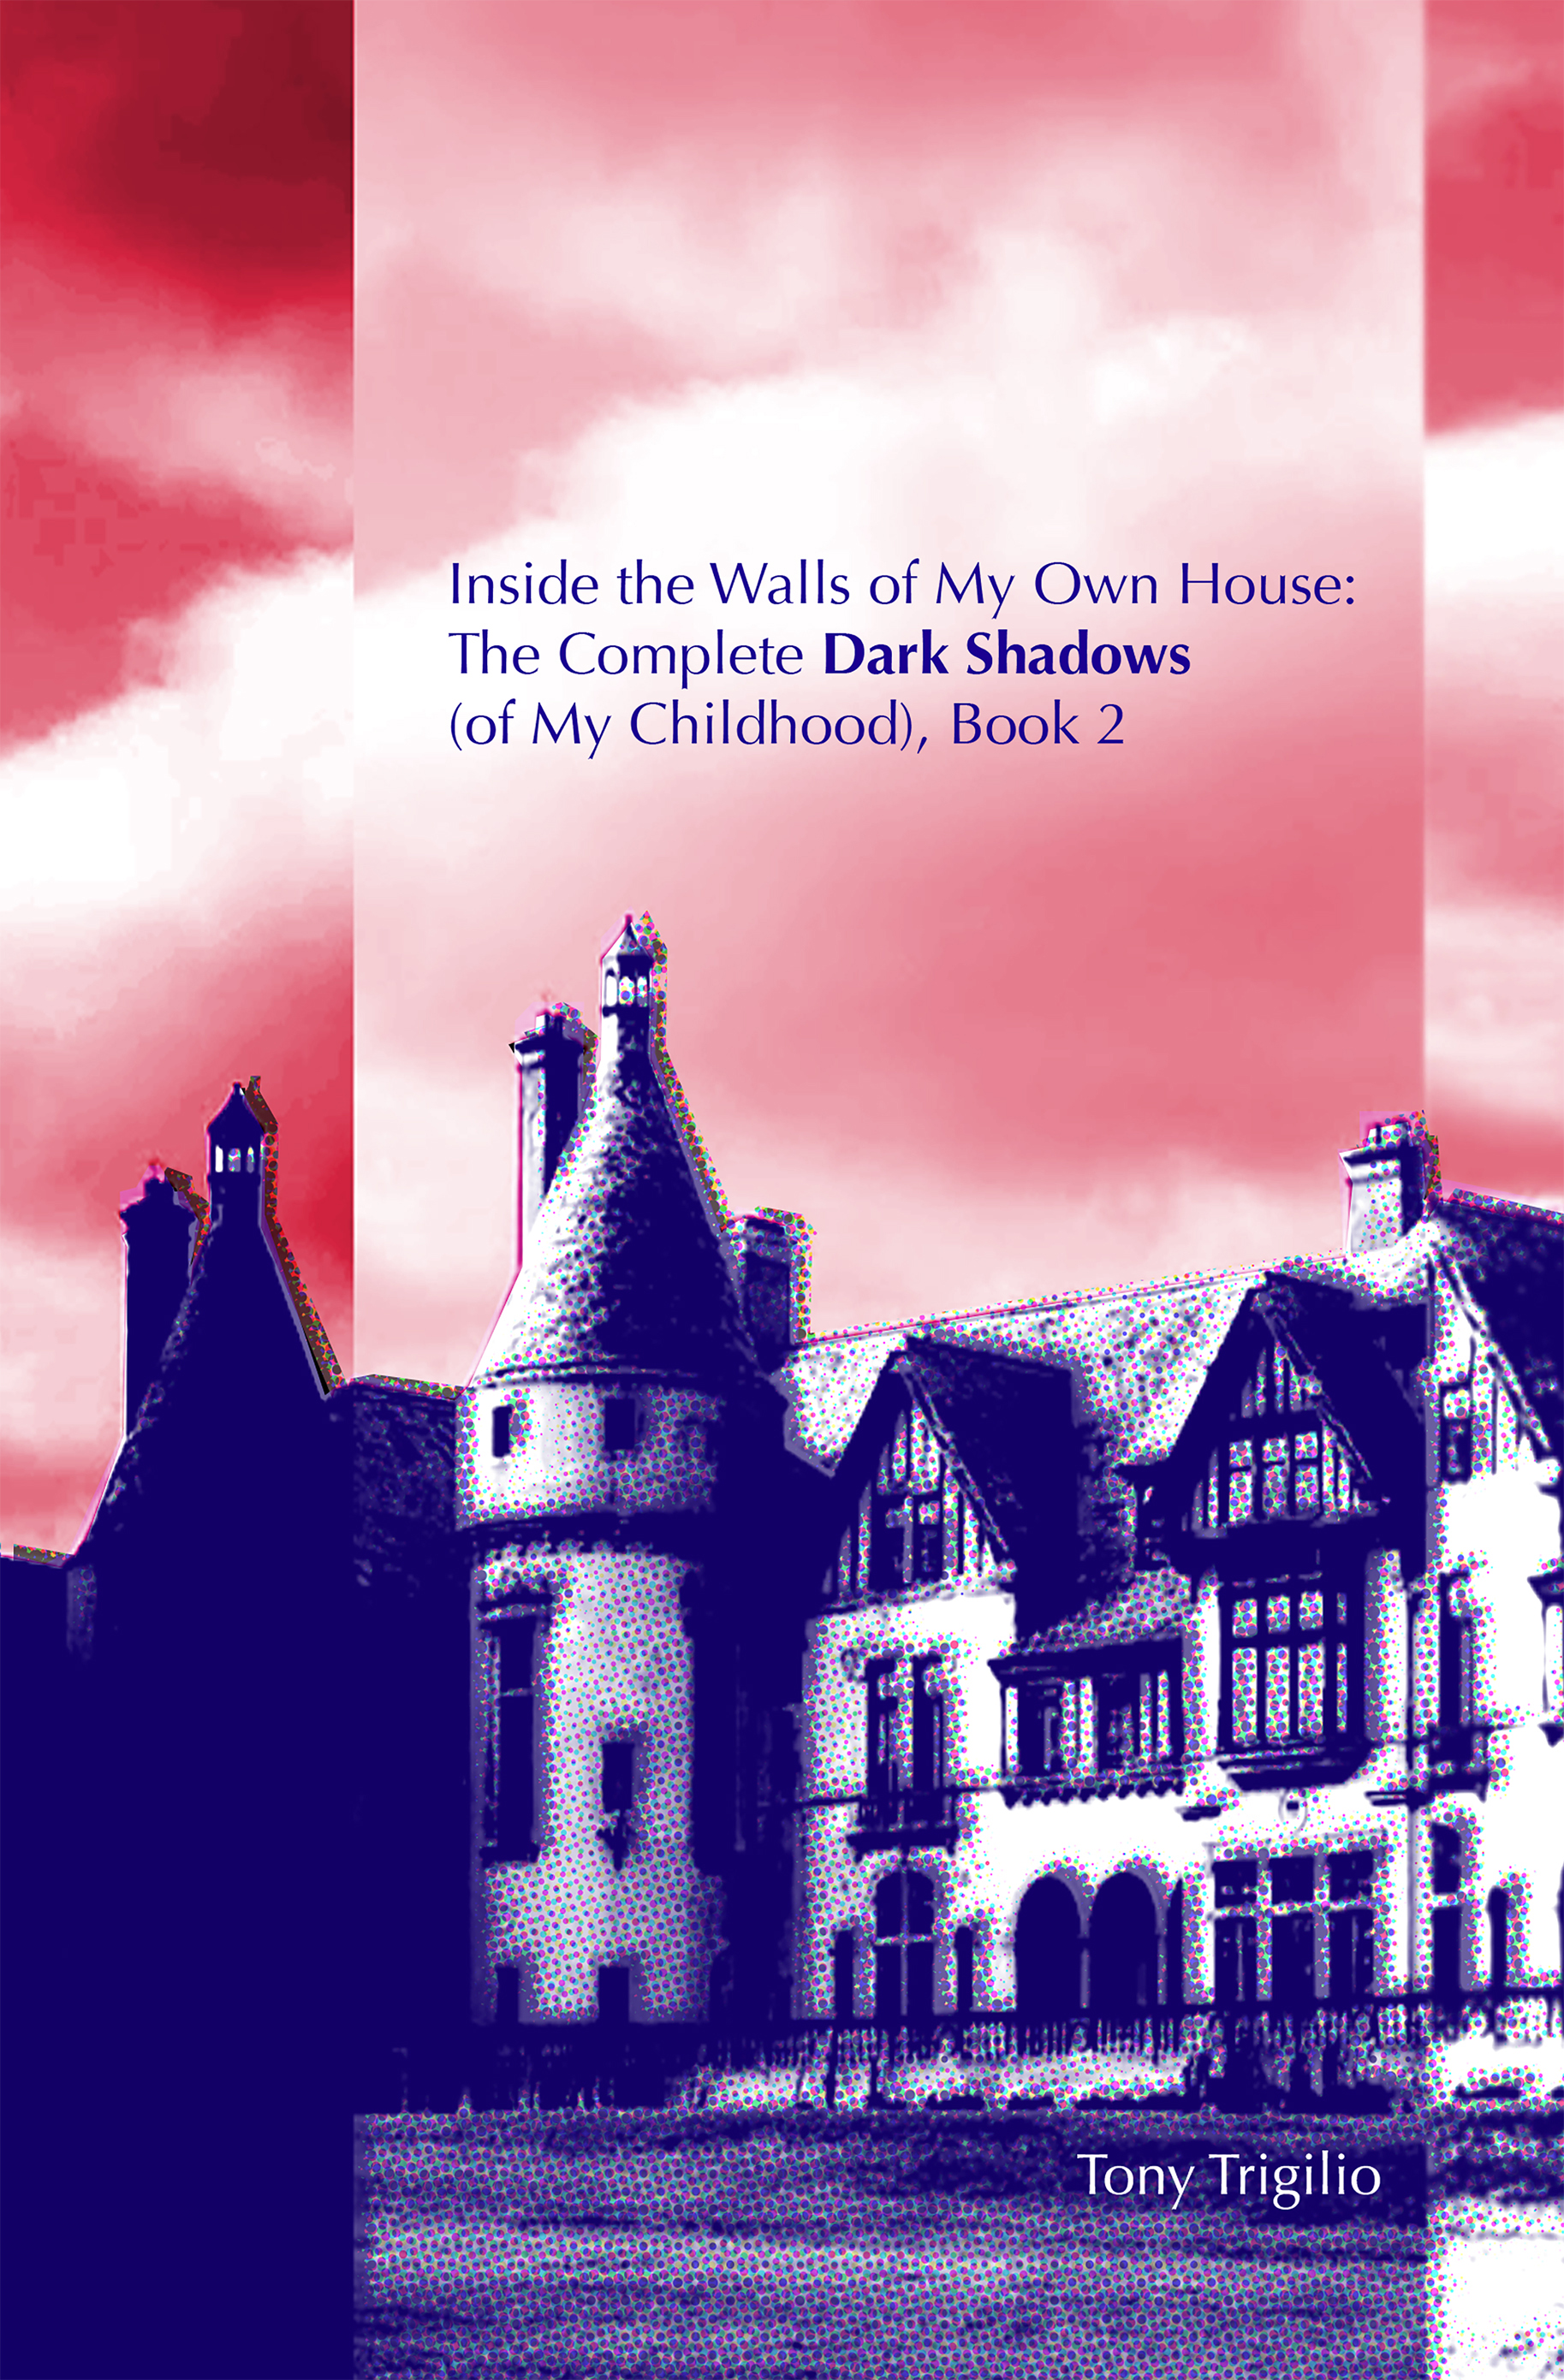 Inside the Walls of My Own House: The Complete Dark Shadows (of My Childhood) Book 2